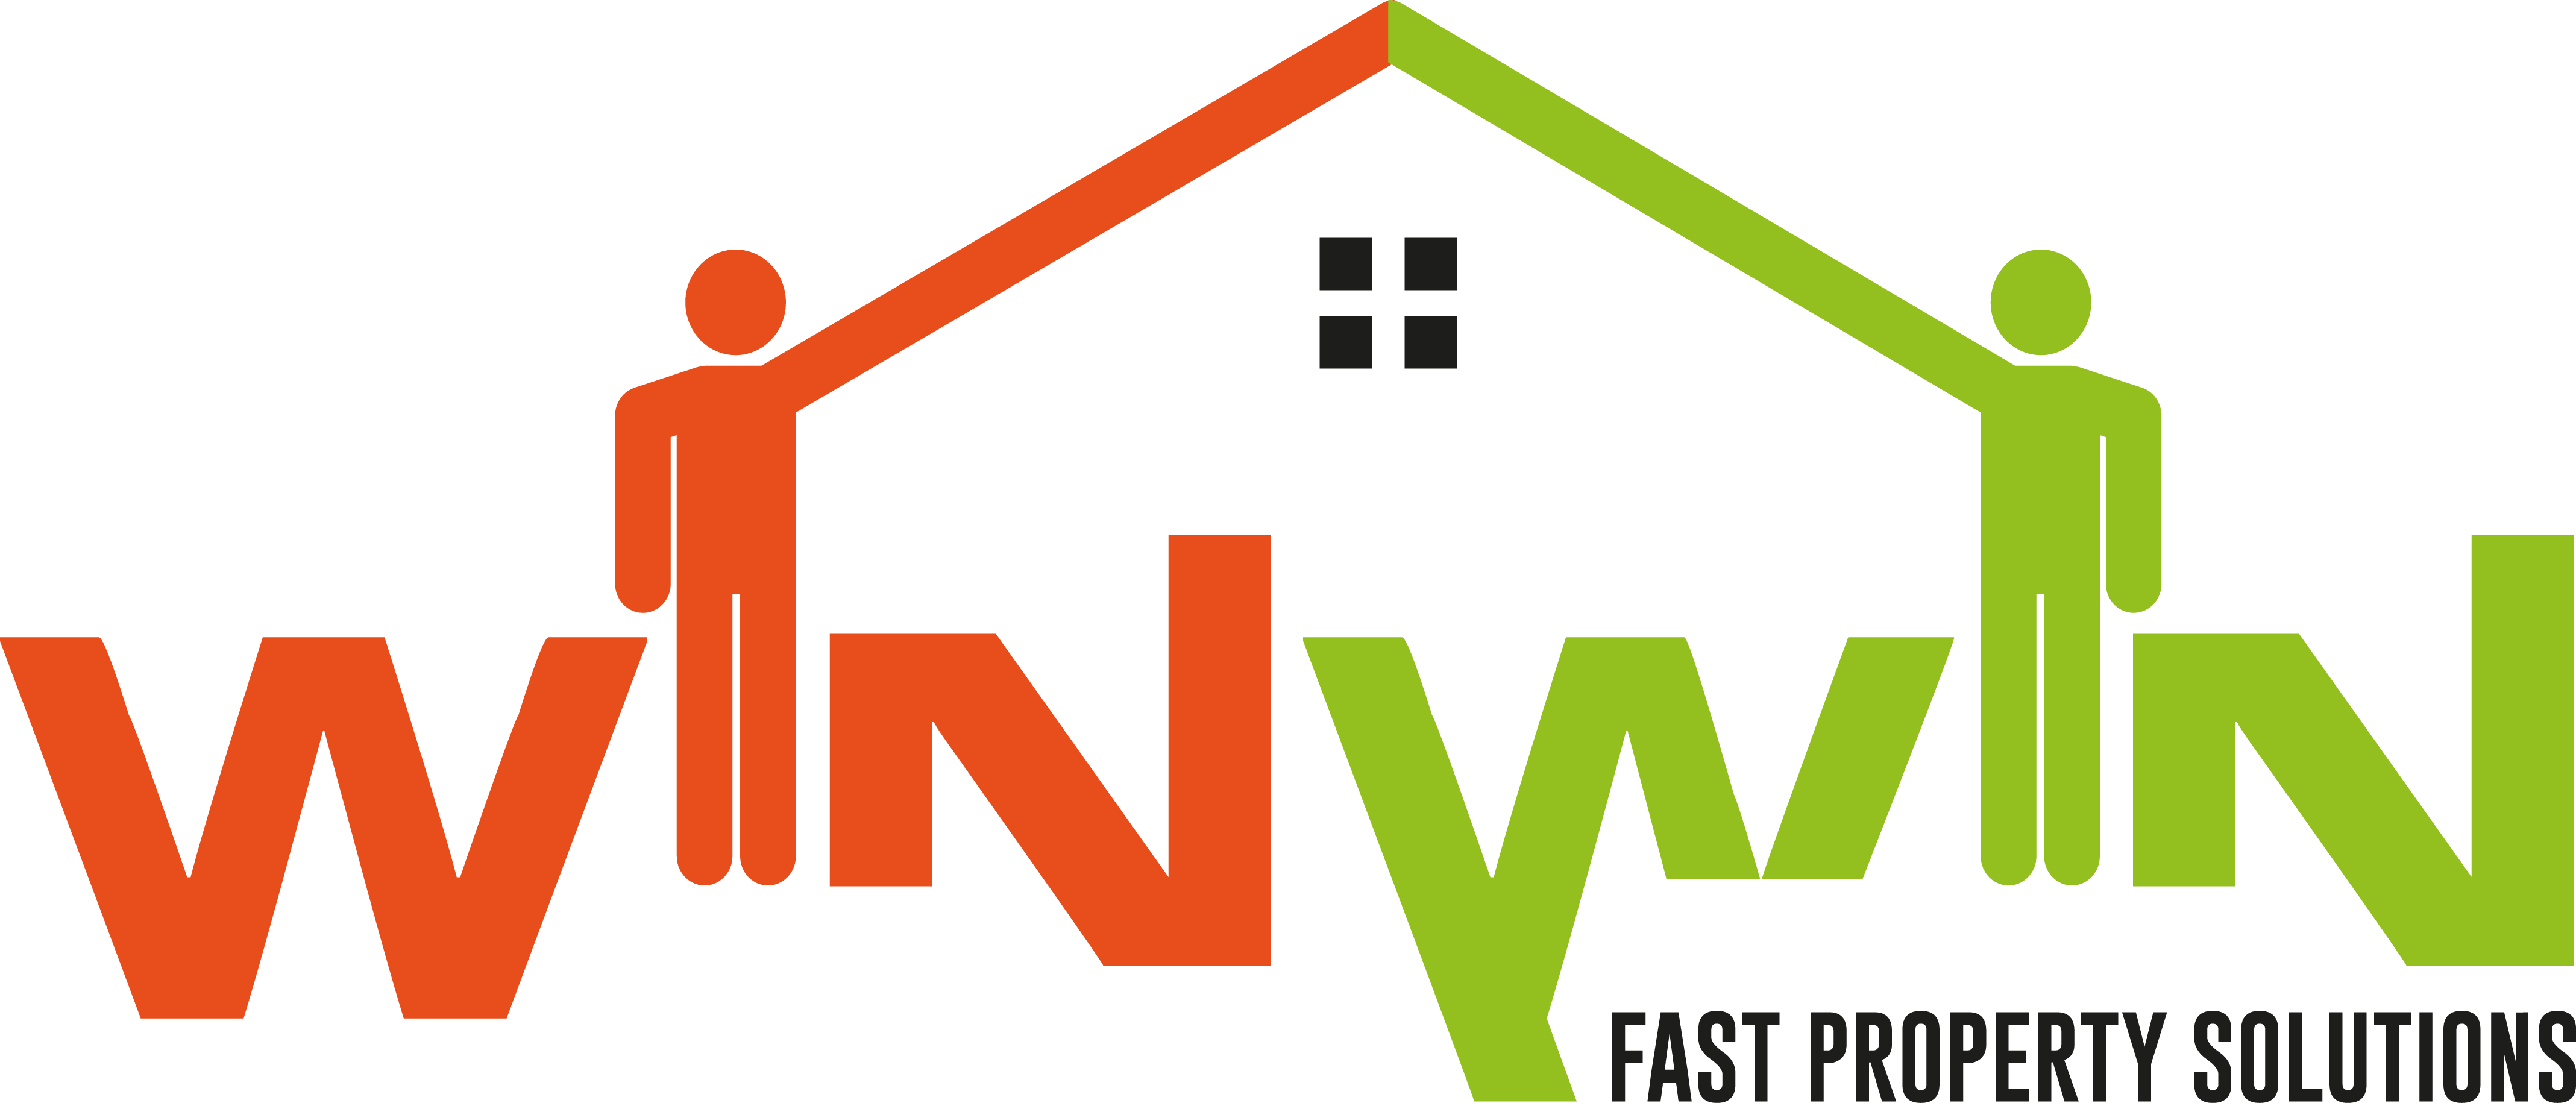 Win Win Fast Property Solutions, LLC